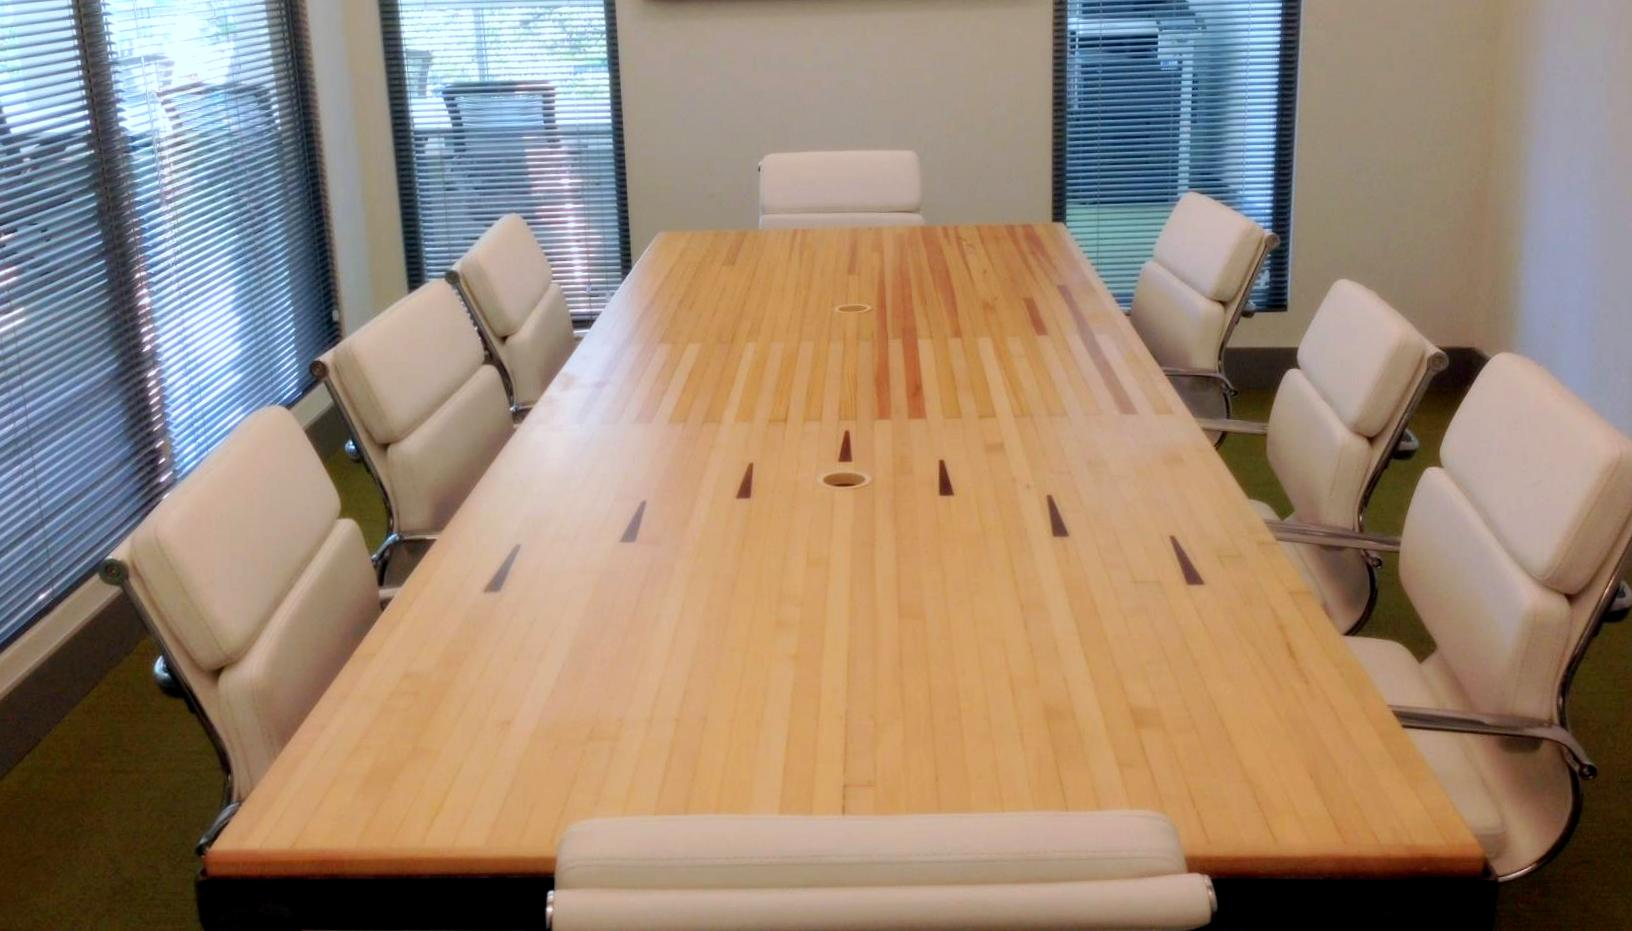 Bowling Alley Conference Table buro Series